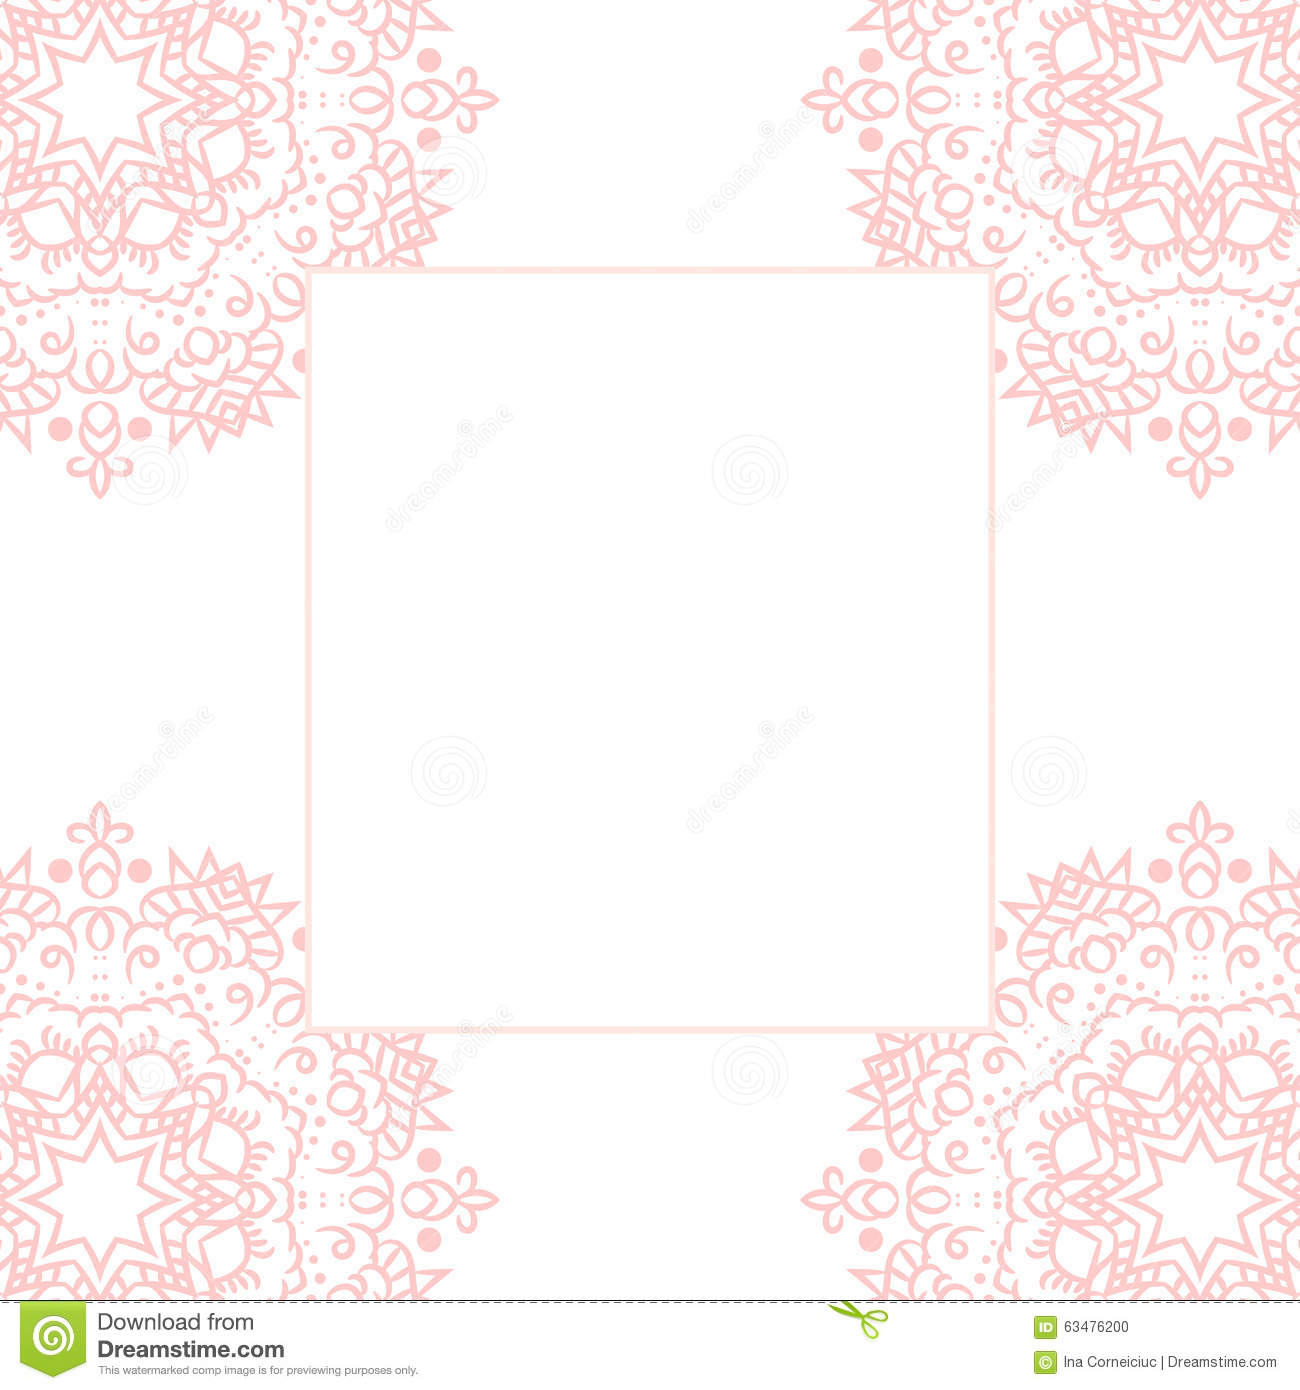 Baby Girl Invitation Template is luxury invitation layout